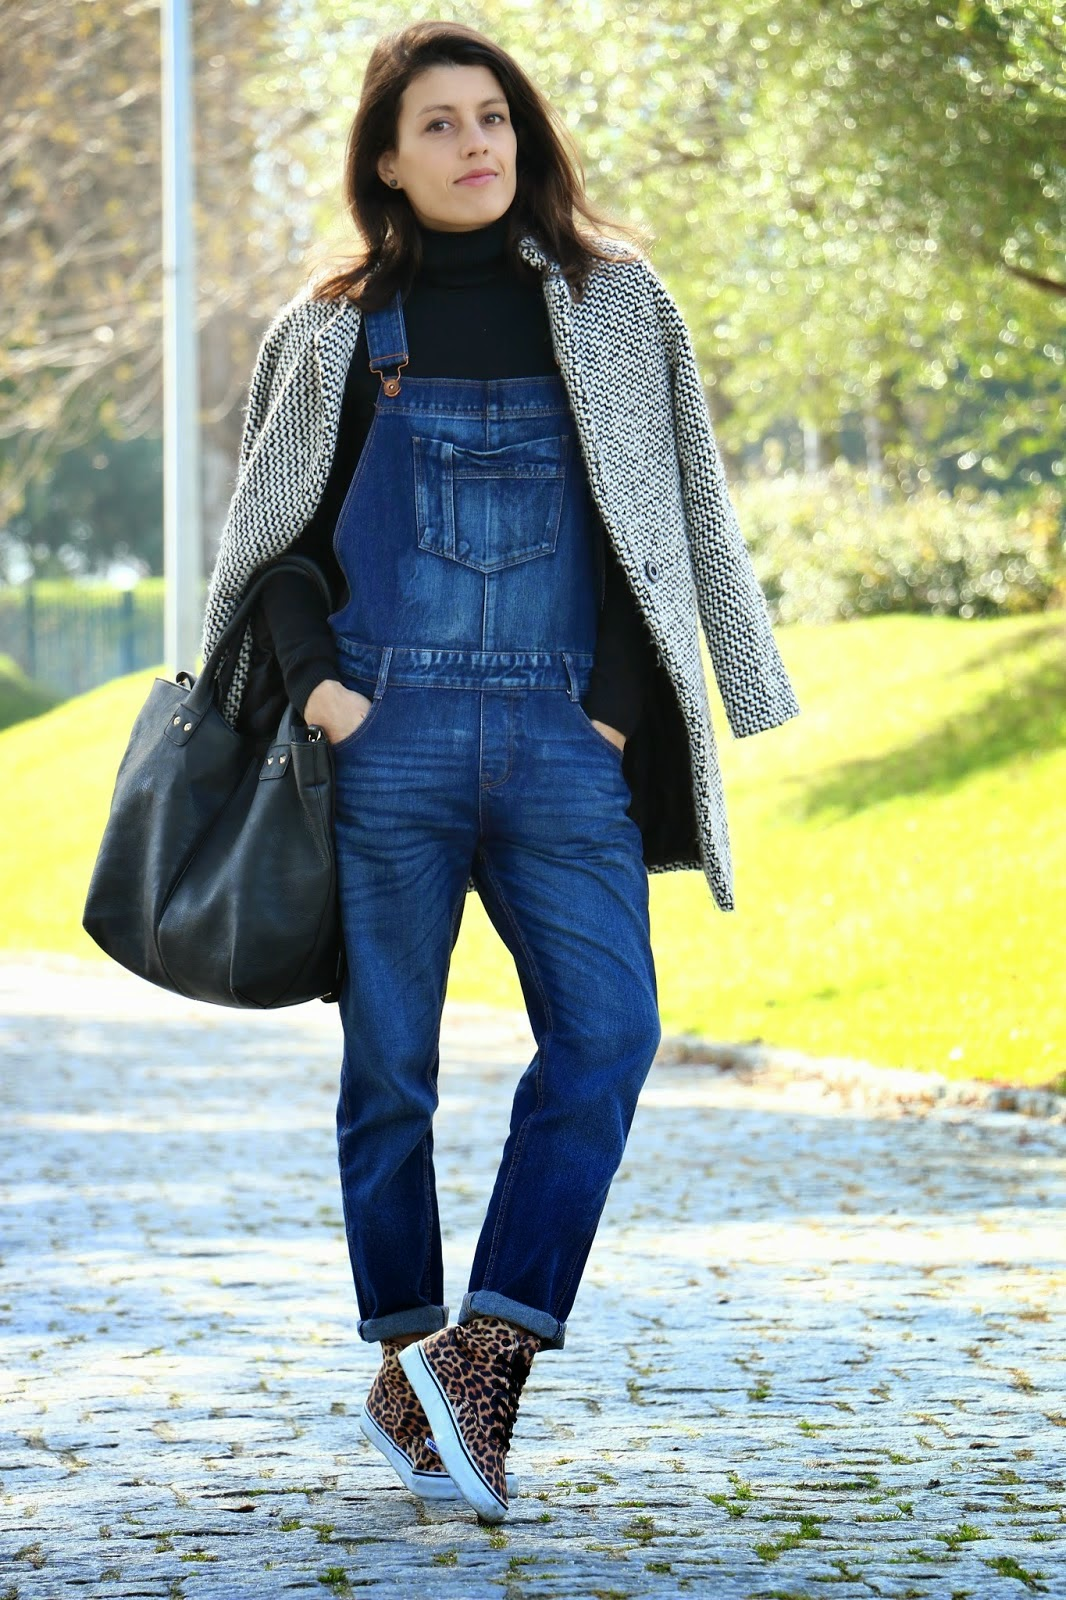 http://ilovefitametrica.blogspot.pt/2015/01/dungarees-and-leo-print.html